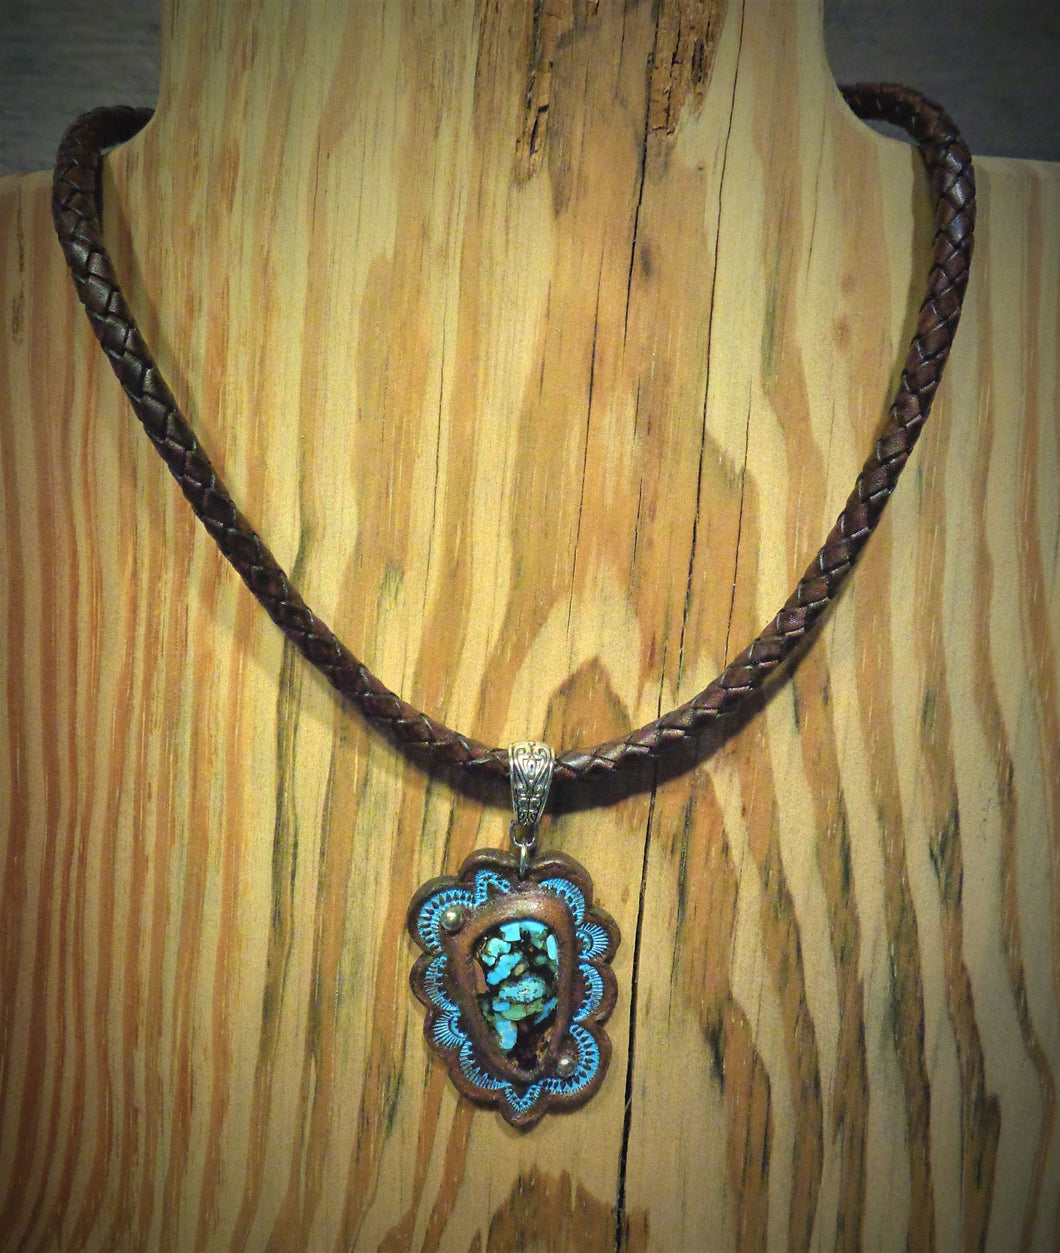 Hand Tooled Leather Pendant with Douglas Fir and Globe Turquoise Inlay